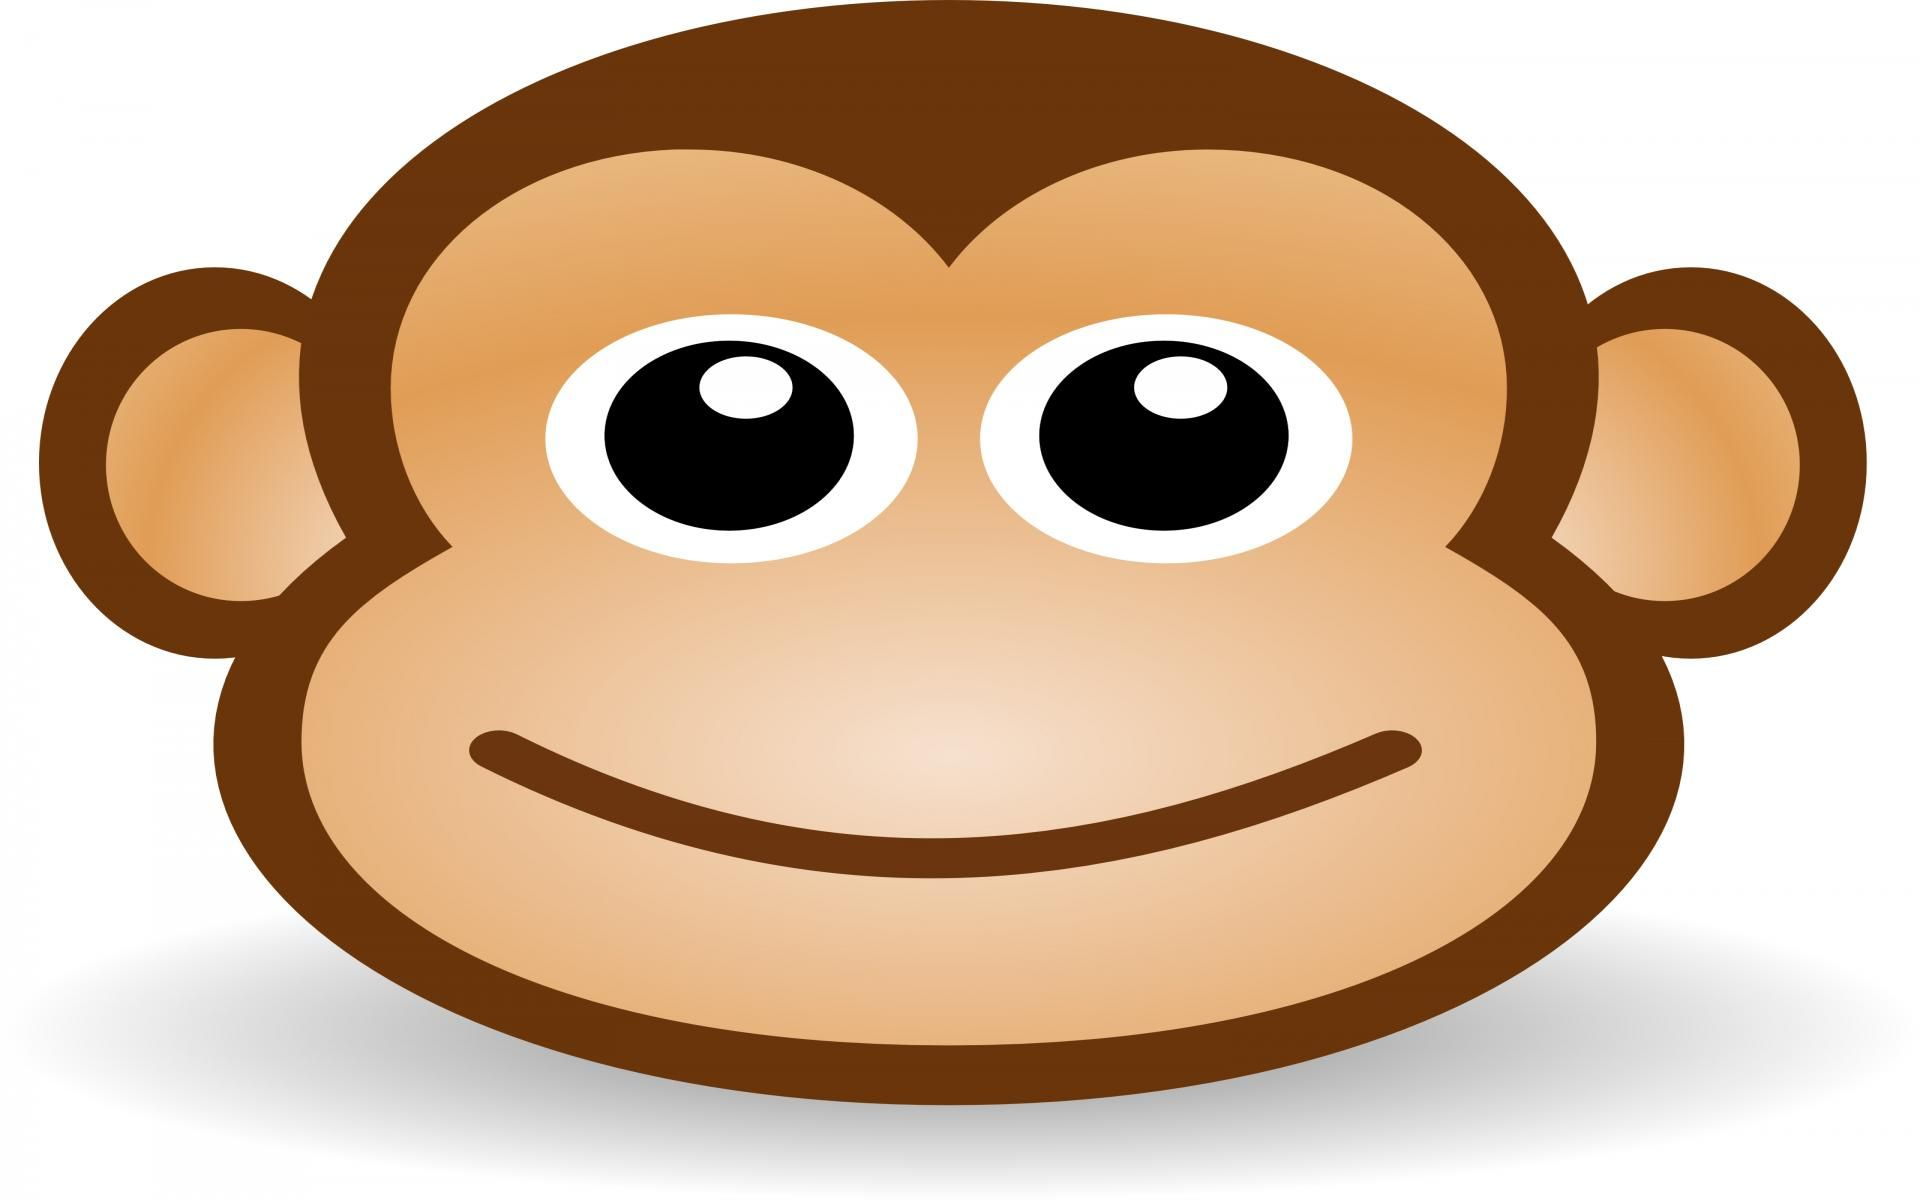 Cute Emoji Wallpapers Monkeys Cute Cartoon Monkey Wallpapers Top Free Cute Cartoon